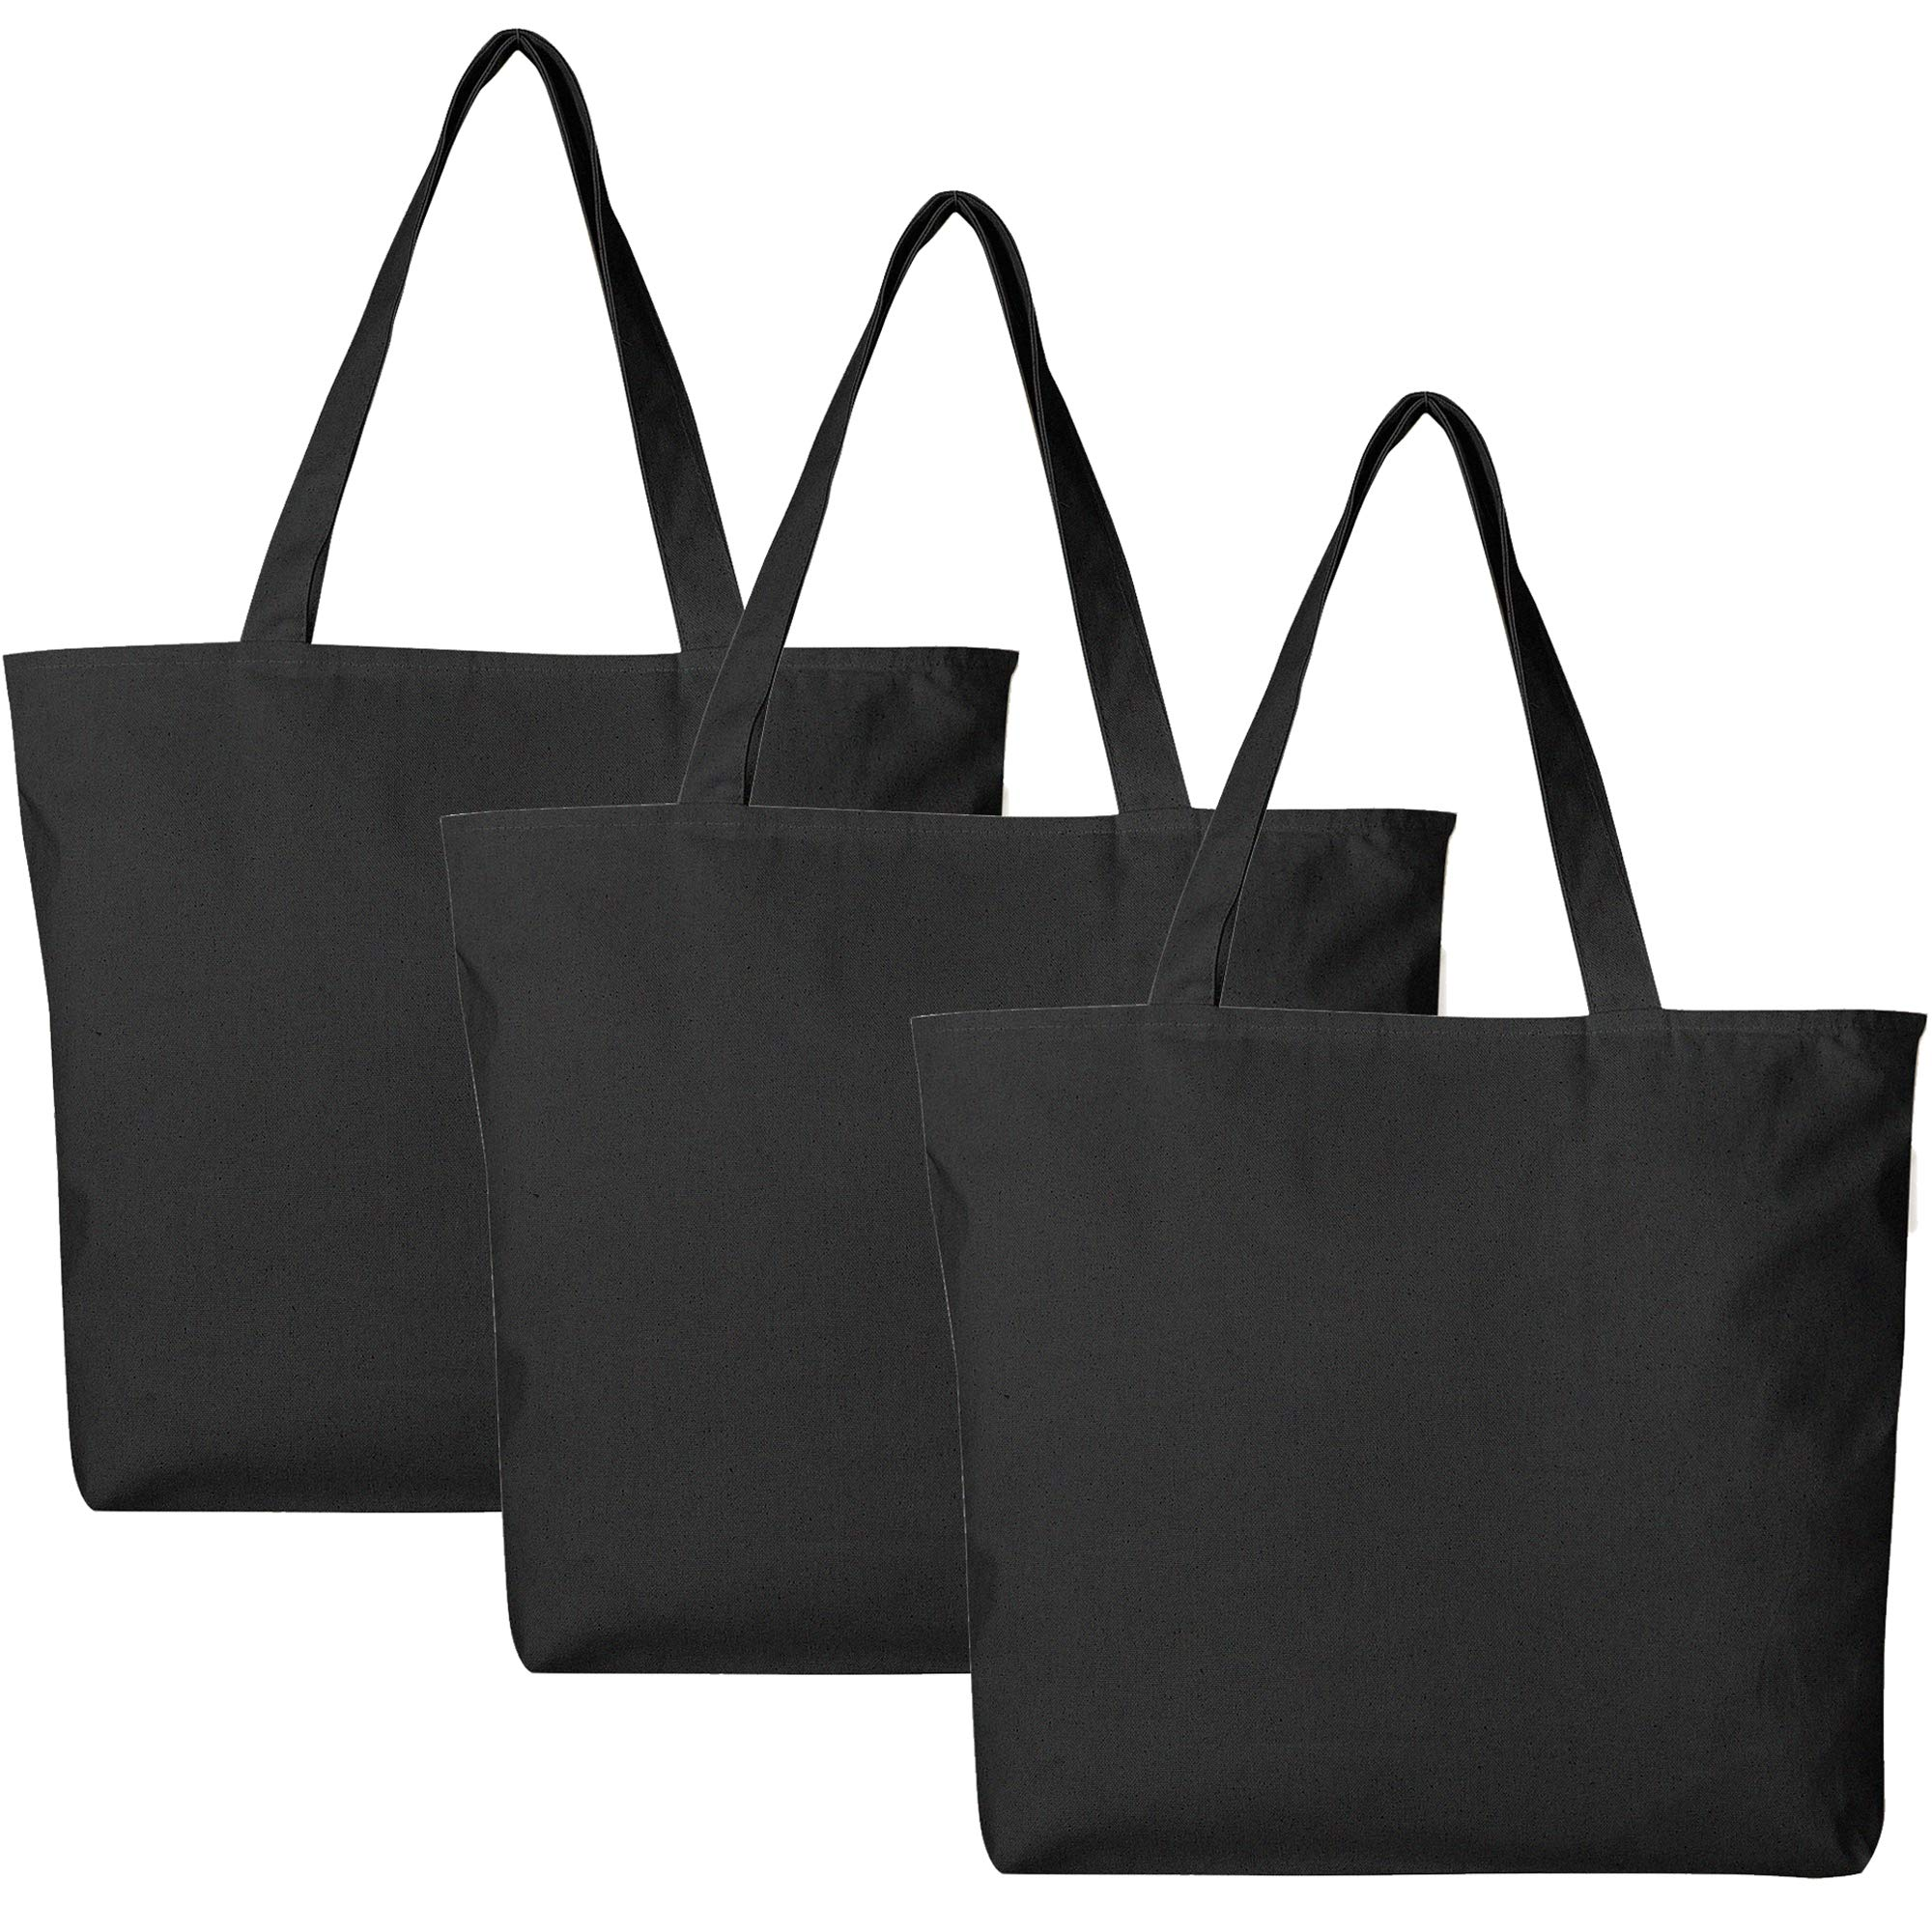 BagzDepot Canvas Tote Bag with Zipper - 3 Pack - Bulk Canvas Bags for Crafts, Groceries, Large Canvas Tote Bag for Women, Men, Kids, Teachers - Canvas Beach Tote Bag - (Black Tote Bags) by BagzDepot